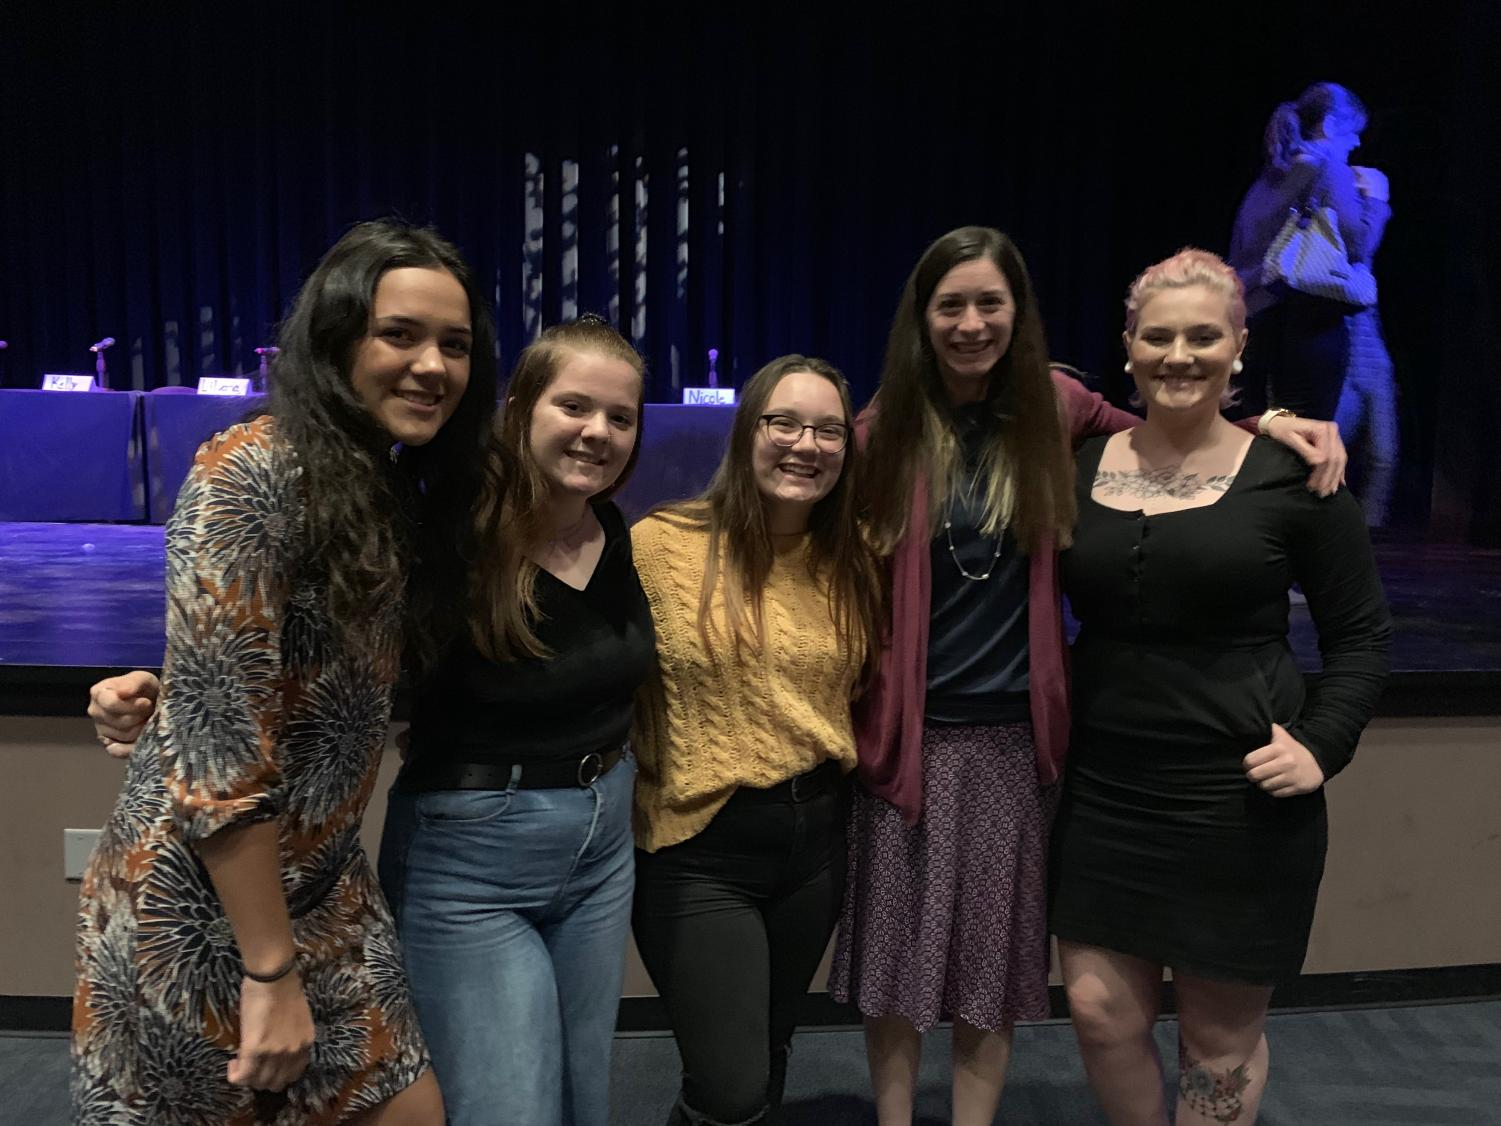 The screening featured a student panel in order to offer audience members a personal perspective on the prevalent mental health issues.